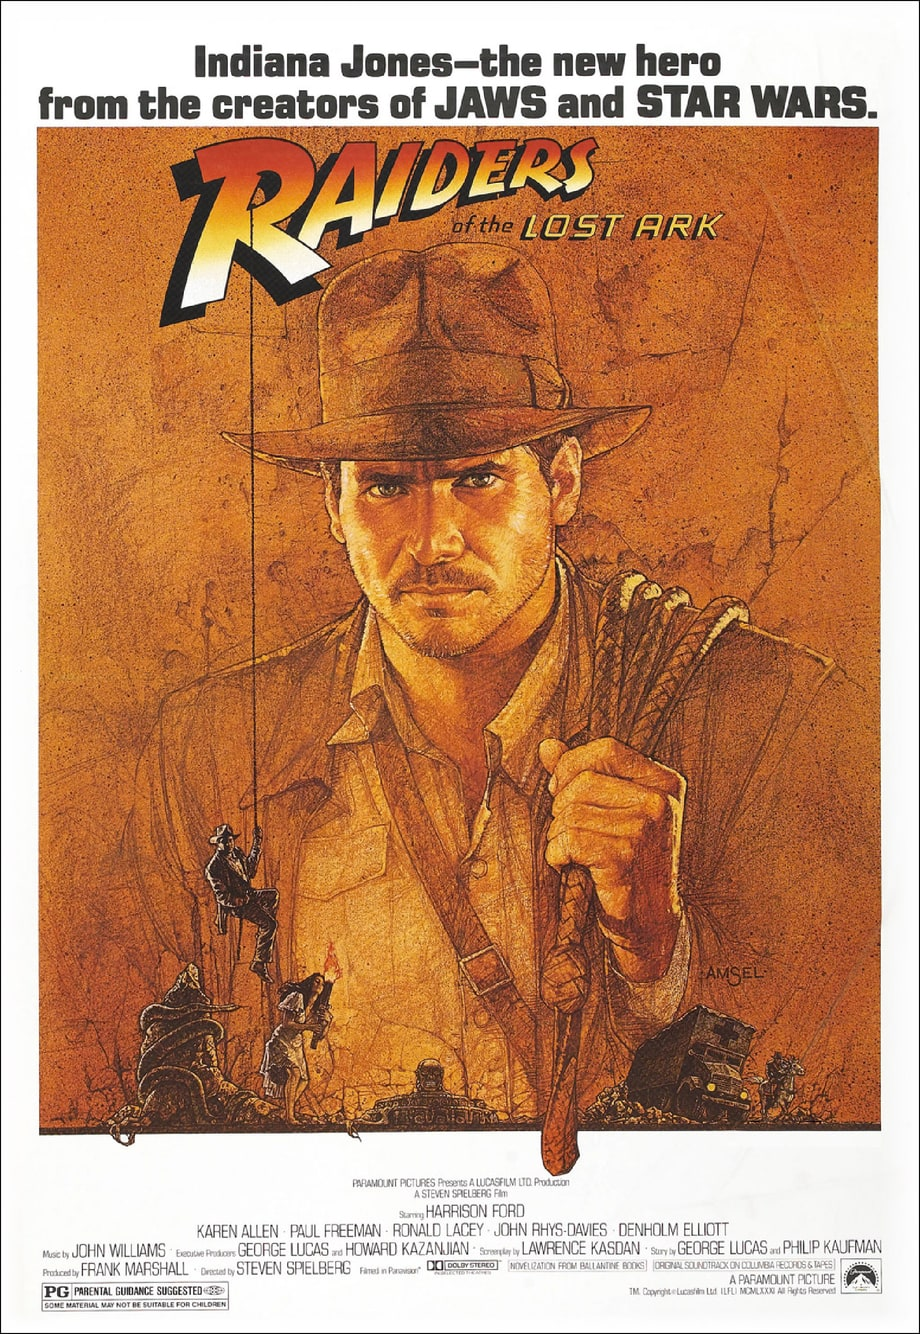 6. 'Raiders of the Lost Ark'